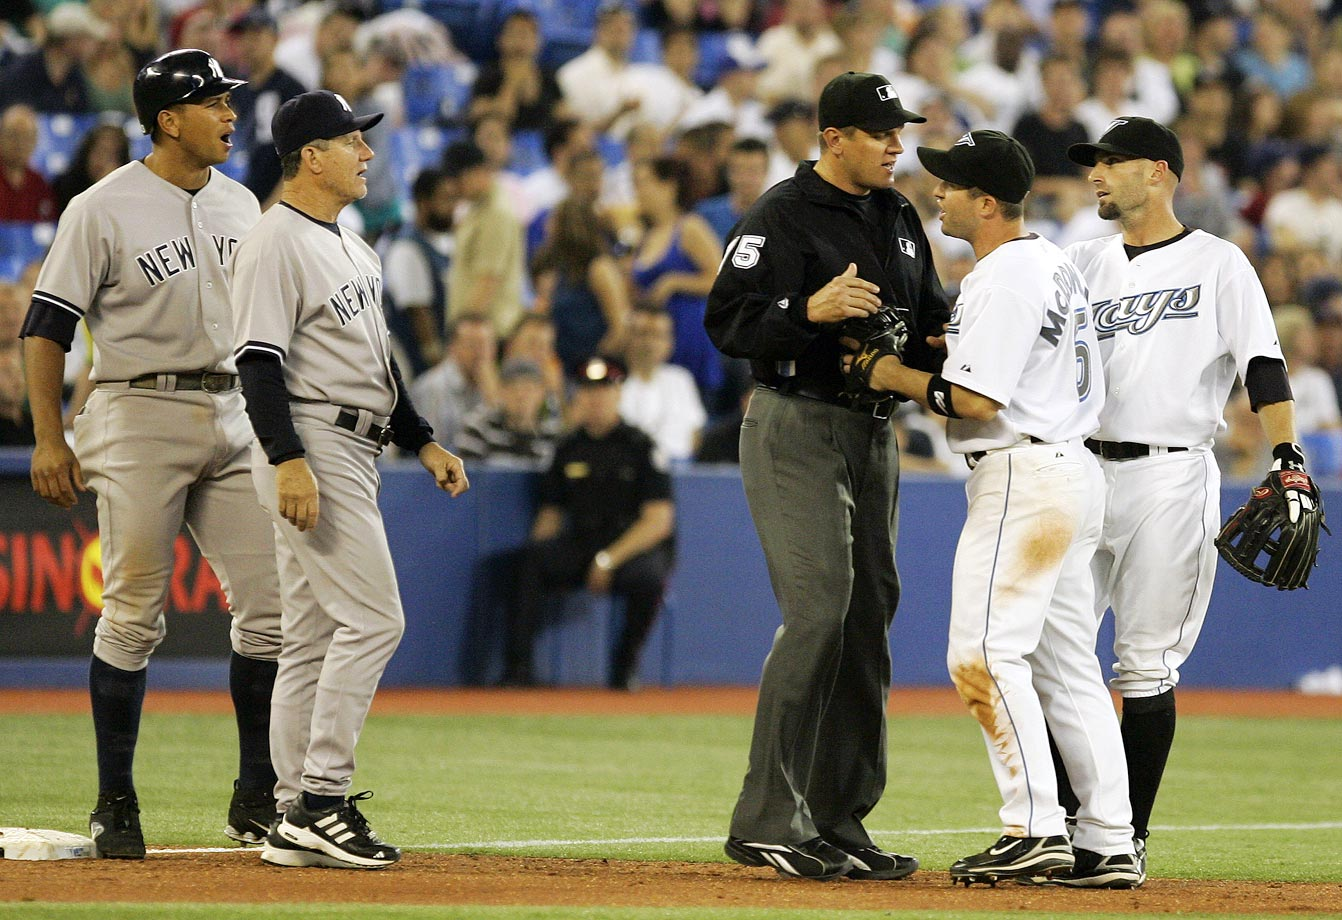 "During an early-season matchup with the Blue Jays in 2007, Rodriguez got into some hot water north of the border. With two out in the ninth and the Yankees leading 10-5, Jorge Posada hit an infield pop-up. As third baseman Howie Clark settled under the ball, Rodriguez ran past him on the base path. Video replays clearly showed Rodriguez yelling something that was described by Jays on the field as ""Mine!"" or ""I got it!"" The ball dropped, a run scored and shortstop John McDonald had to be restrained from attacking Rodriguez, who insisted he only yelled, ""Ha."""